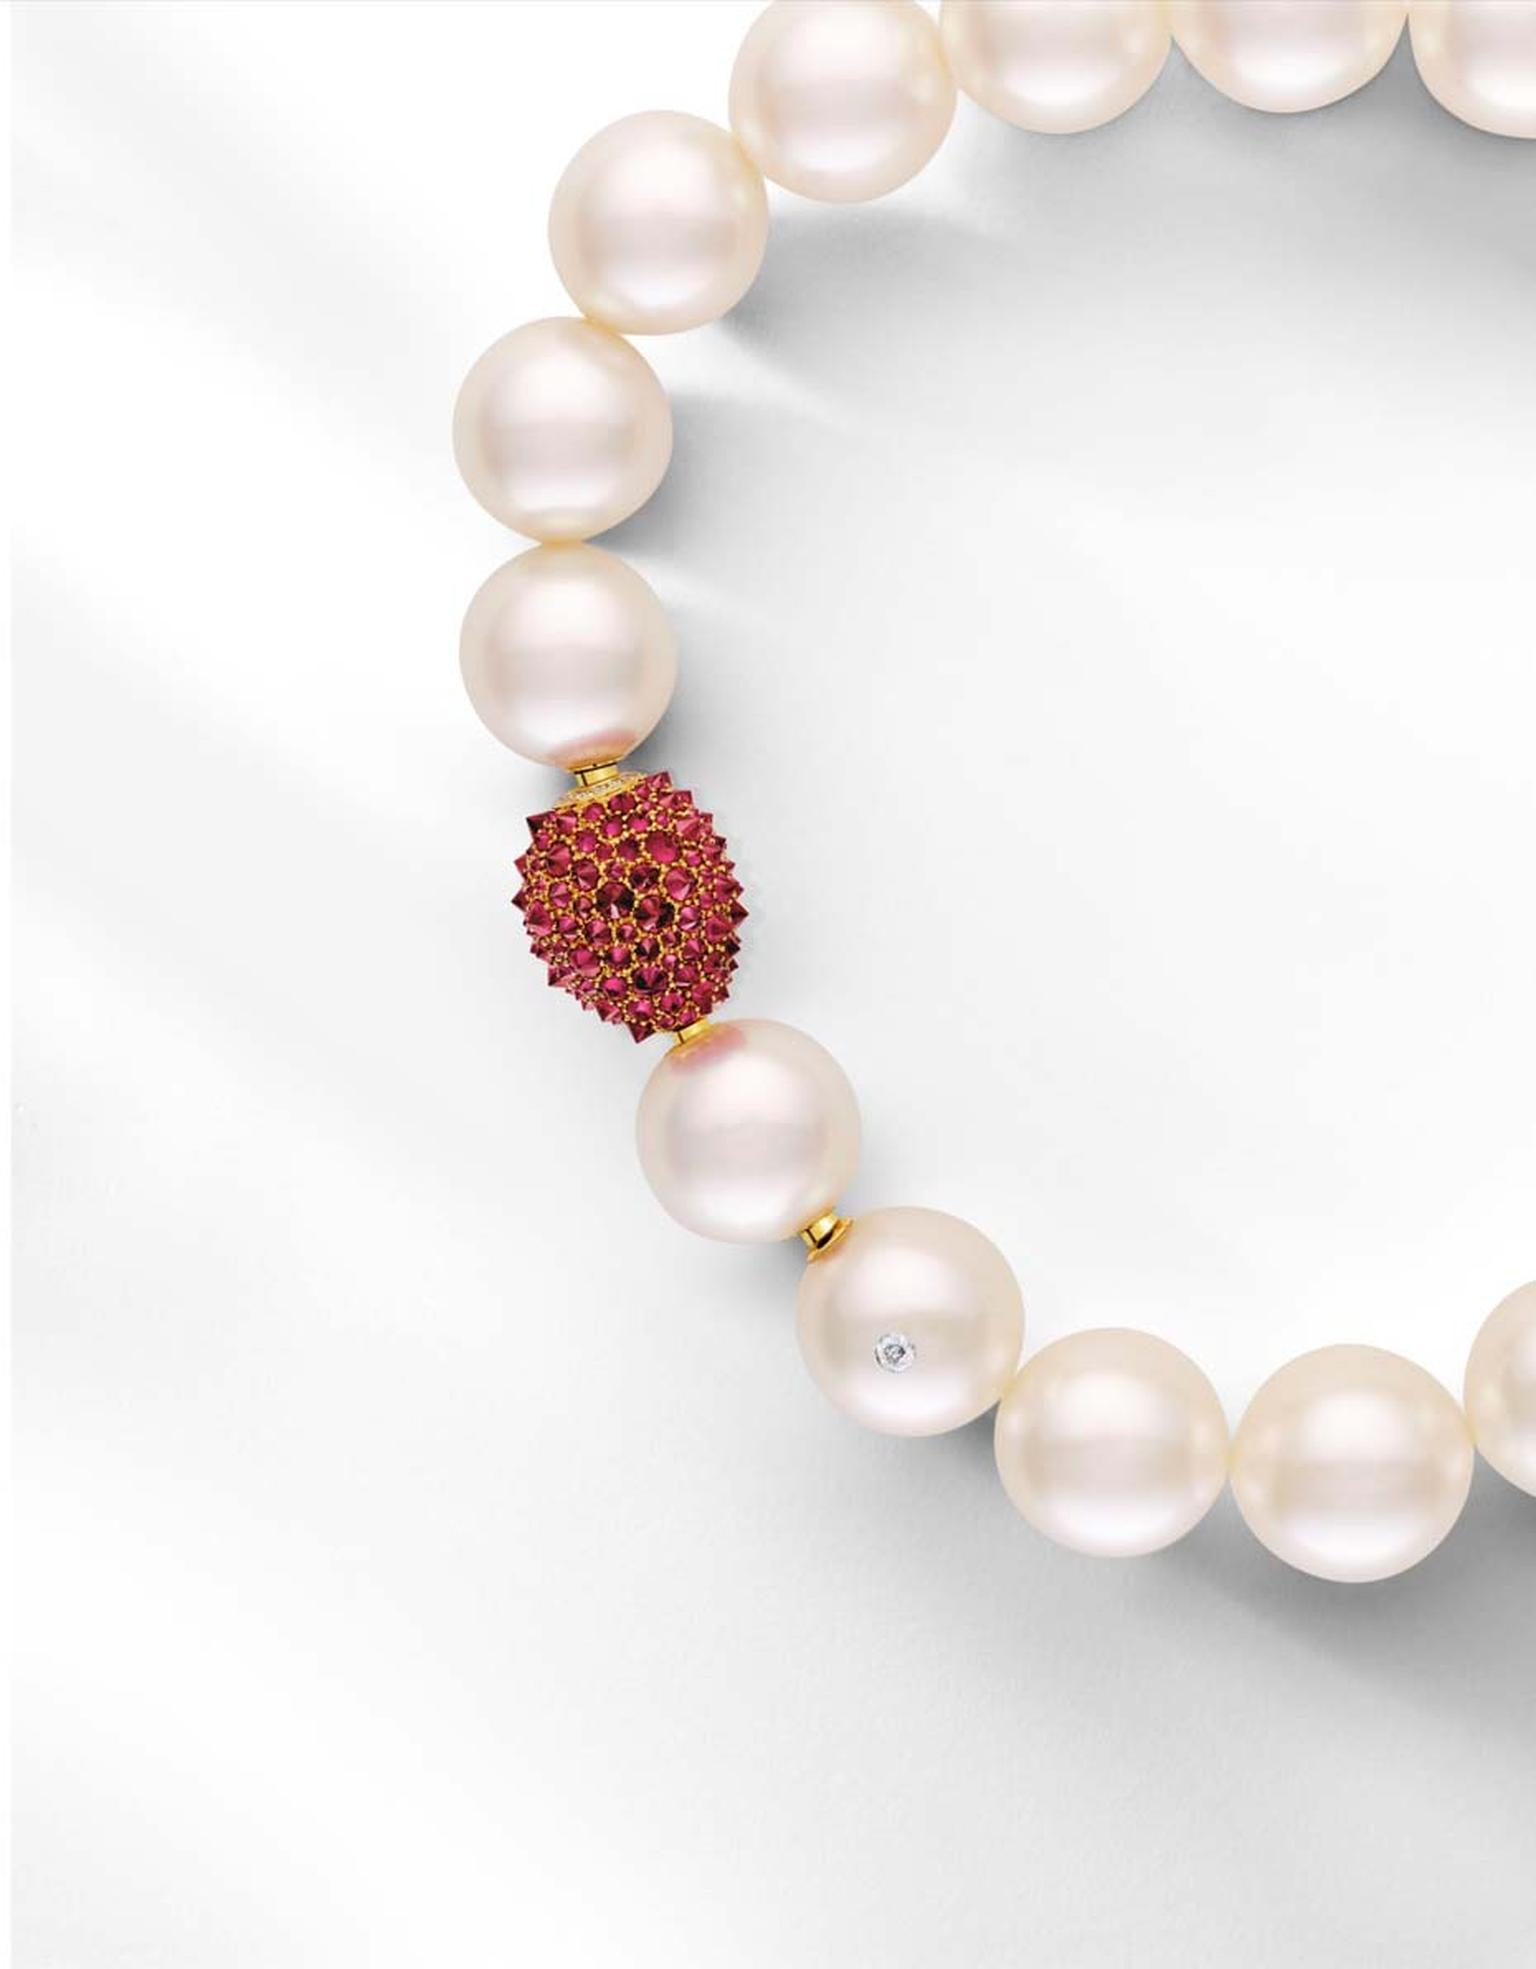 Paspaley Australian South Sea pearl strand and Touchstone clasp with rubies and white diamonds.